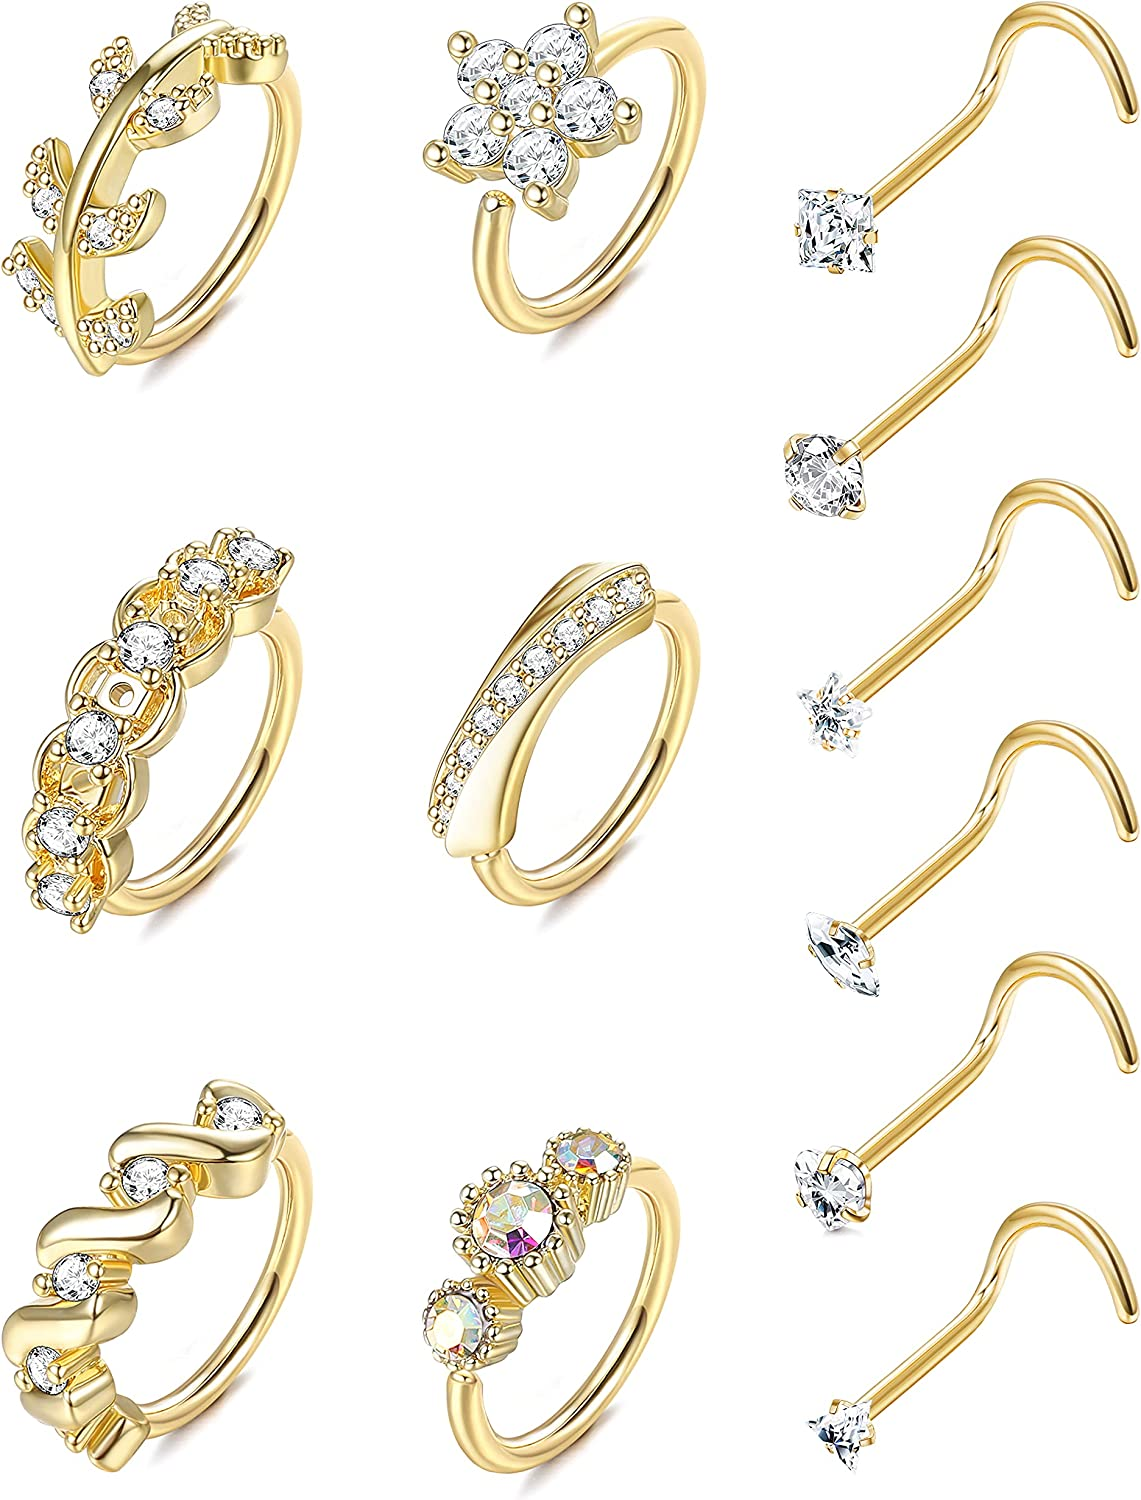 Drperfect 20G Surgical Steel Nose Ring Hoop for Women Men Paved CZ Leaf Flower Nose Piercing Jewelry L Shaped Screw Bone CZ Nose Ring Stud Set